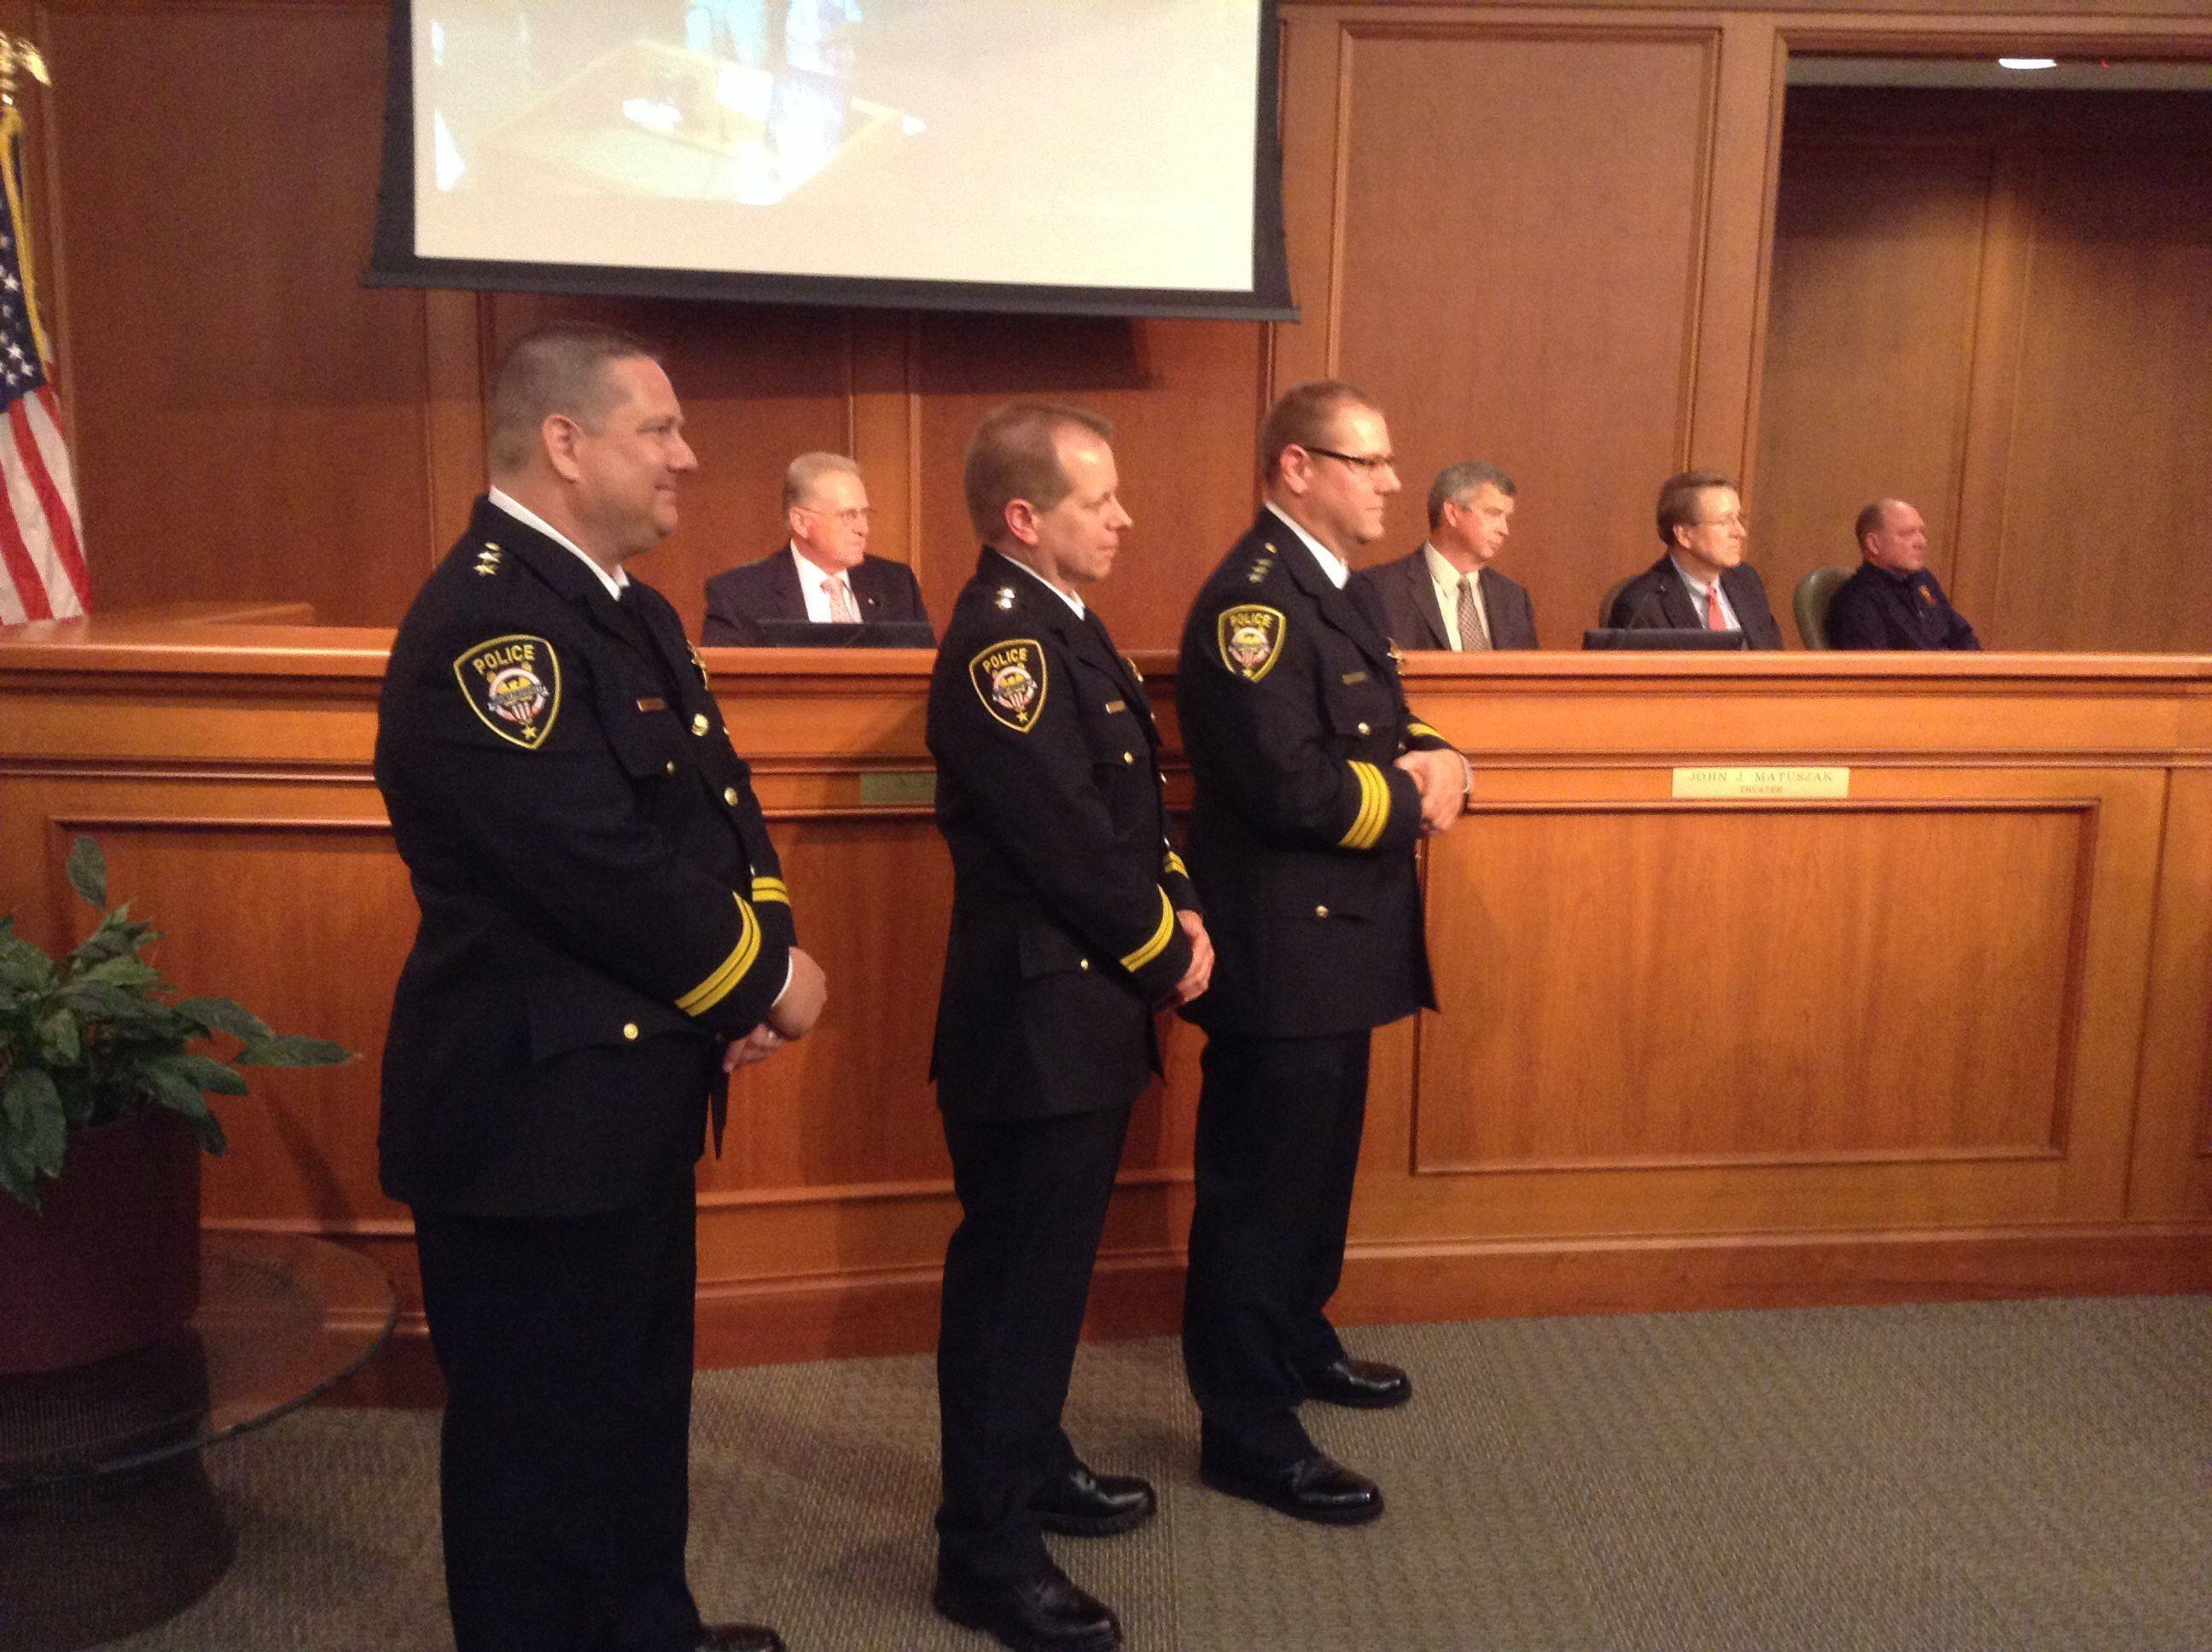 A new leadership team for the Mount Prospect Police Department took their oaths of office Tuesday in a ceremony before the village board. the group includes, from left, Deputy Chief Timothy Griffin, Deputy Chief Michael Eterno and Chief Timothy Janowick.